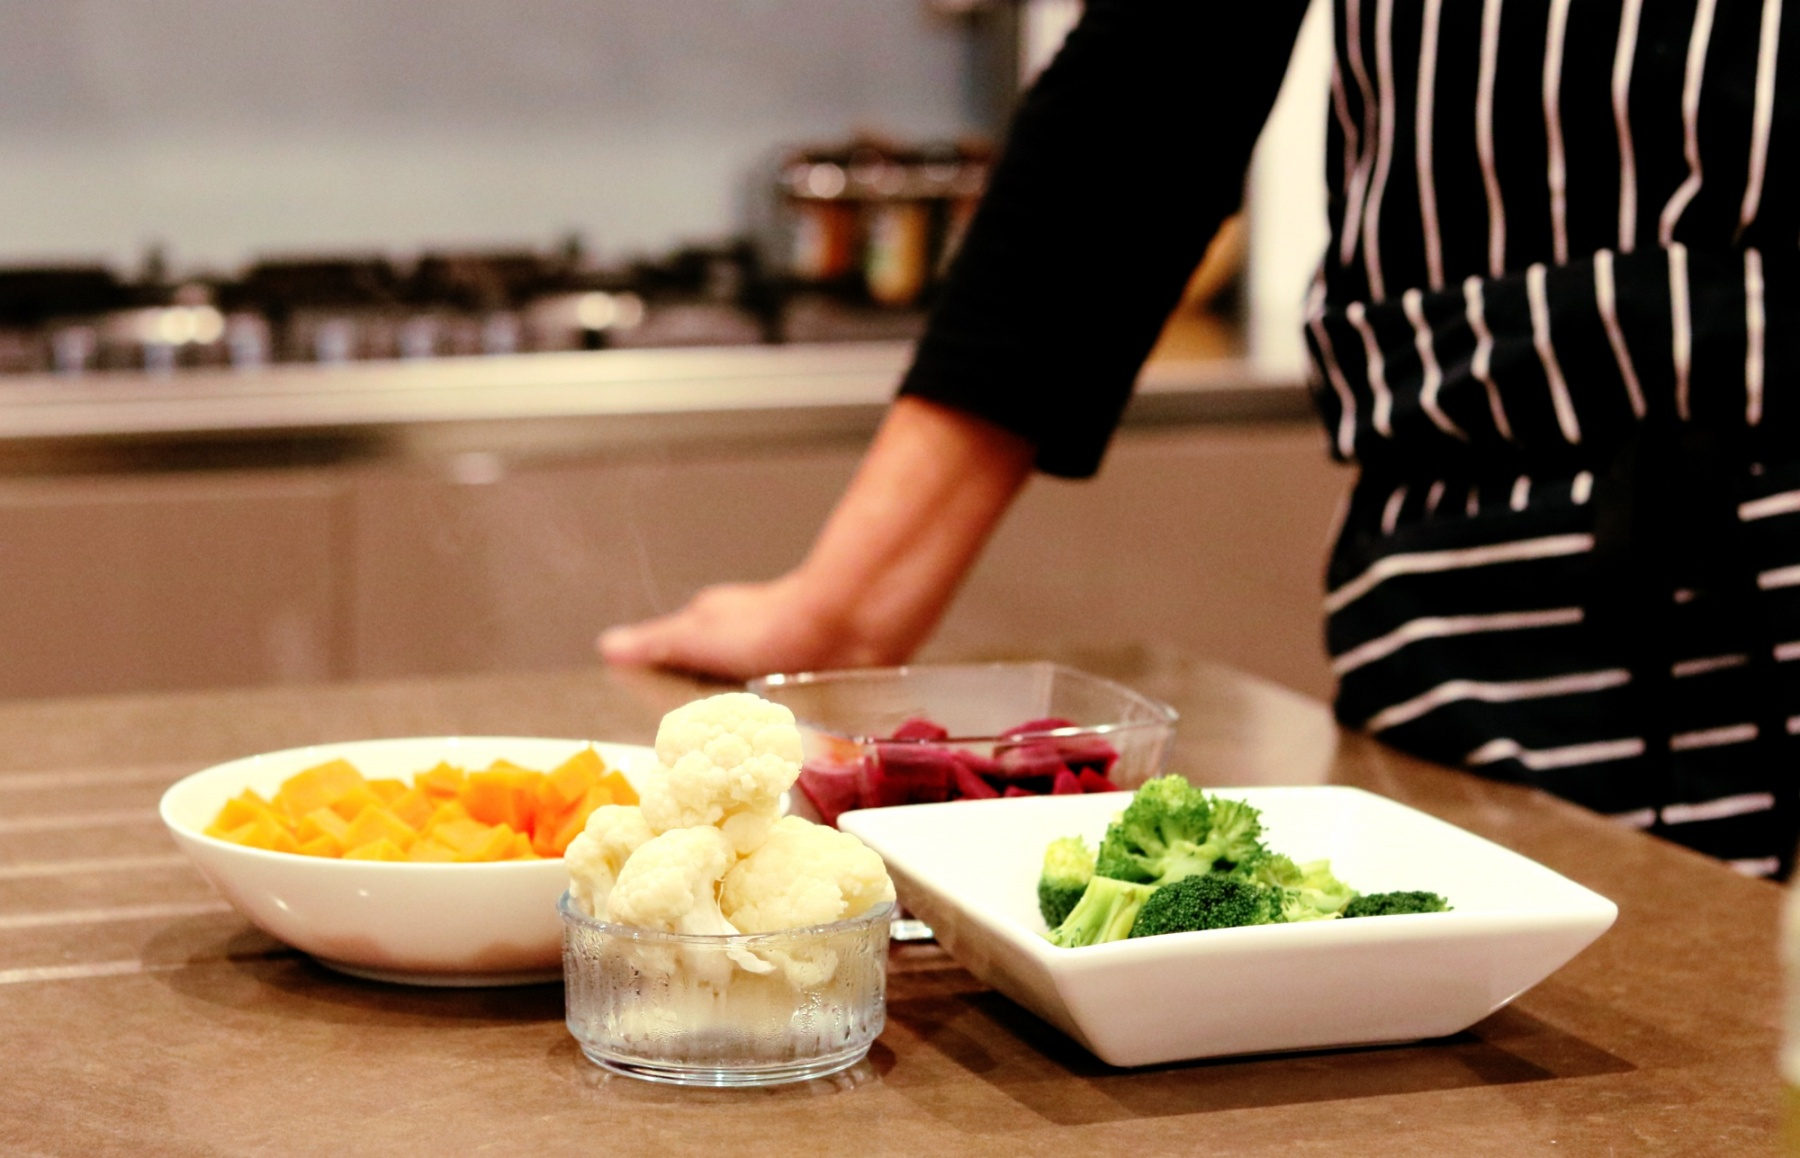 SugarDoctor Recipe Cooked vegetables on a kitchen surface